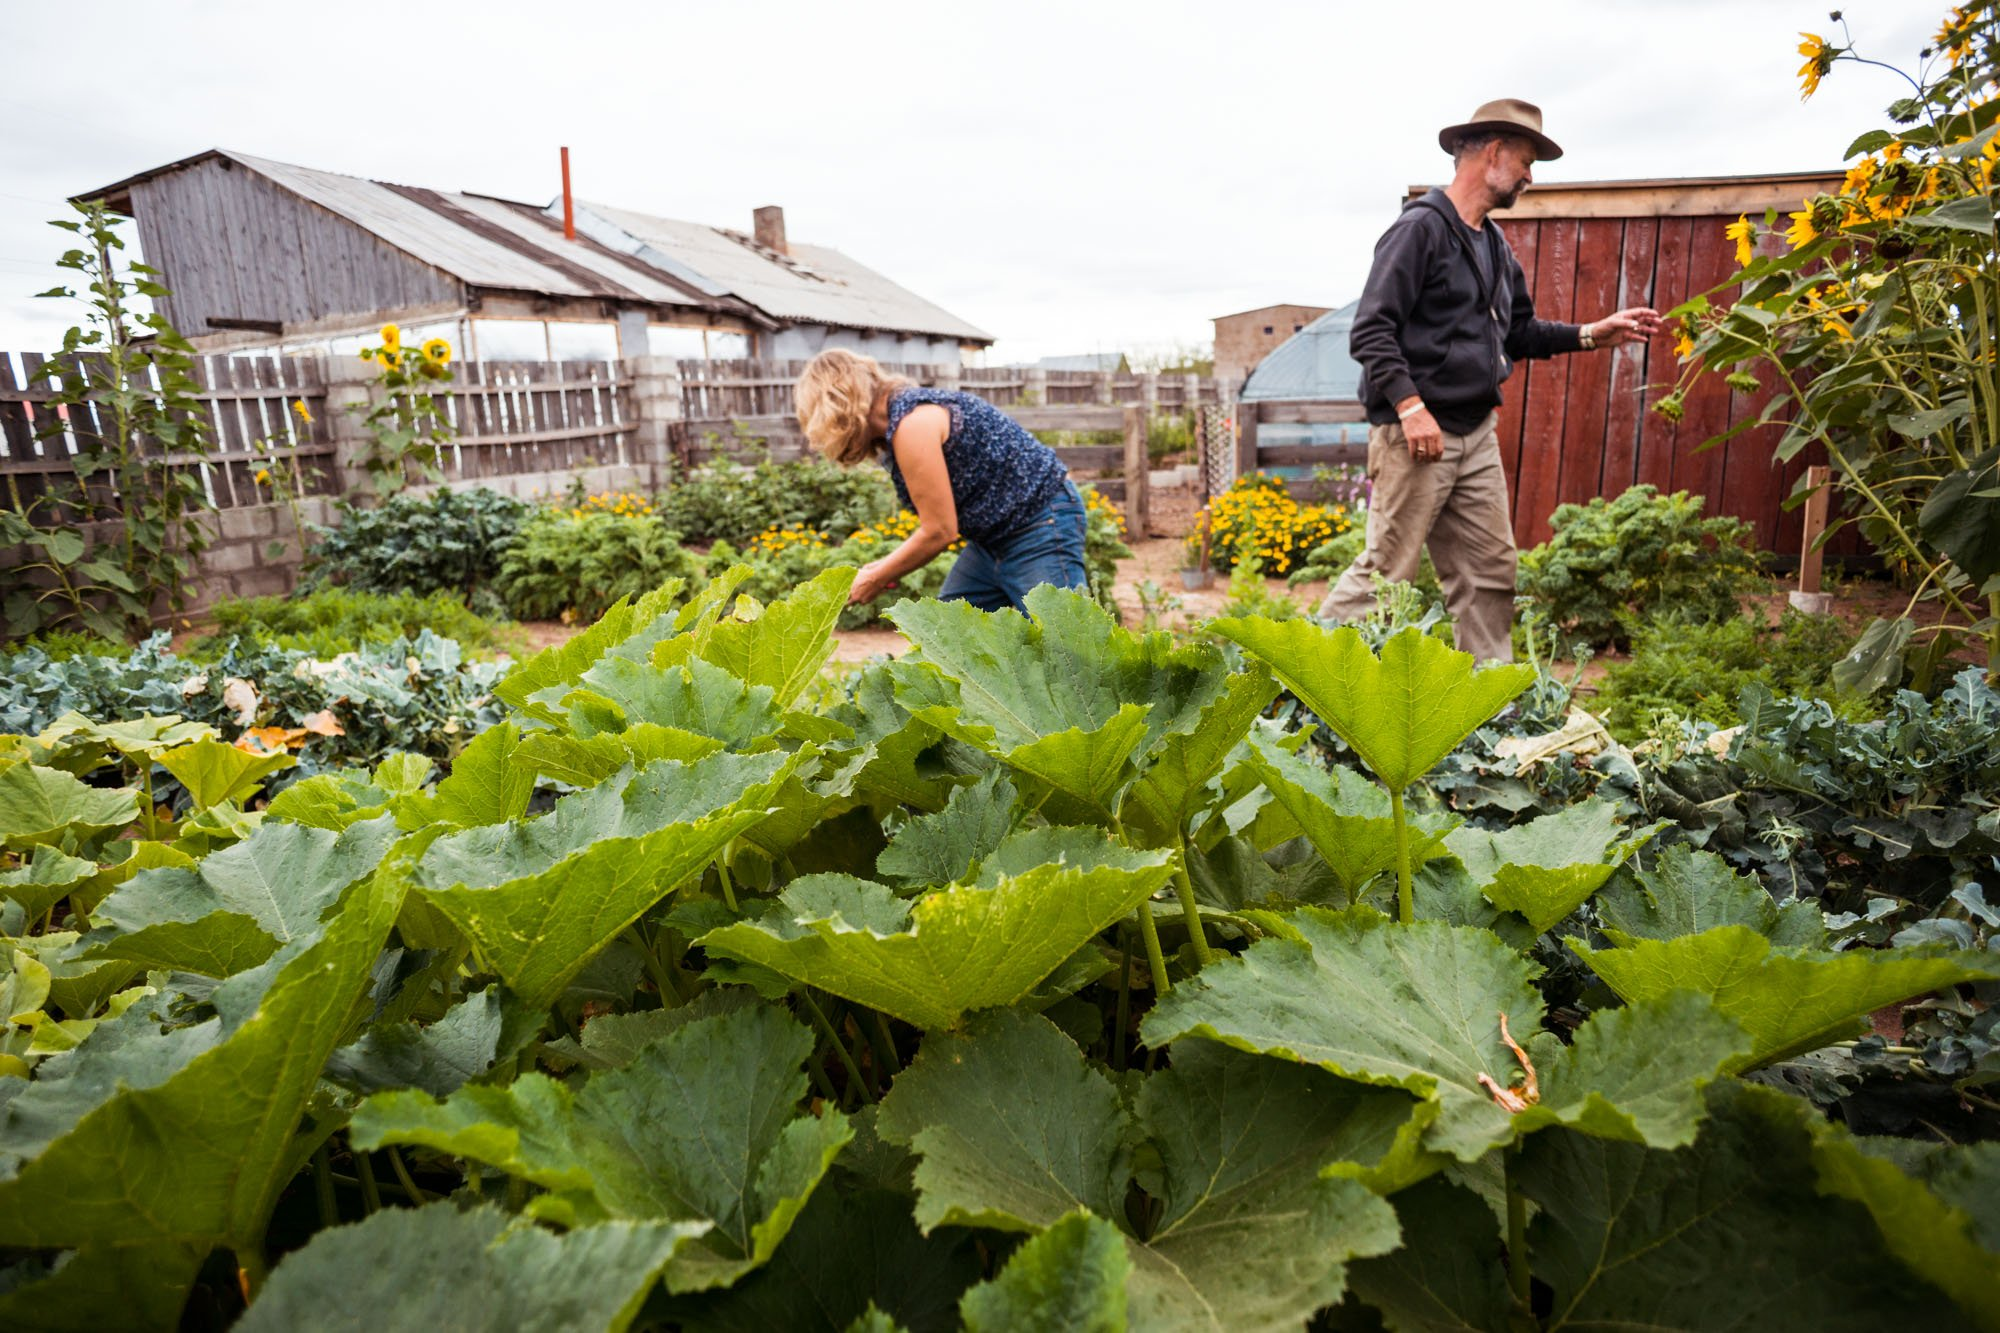 Rob and Marlene gardening in Sukhbaatar, Mongolia